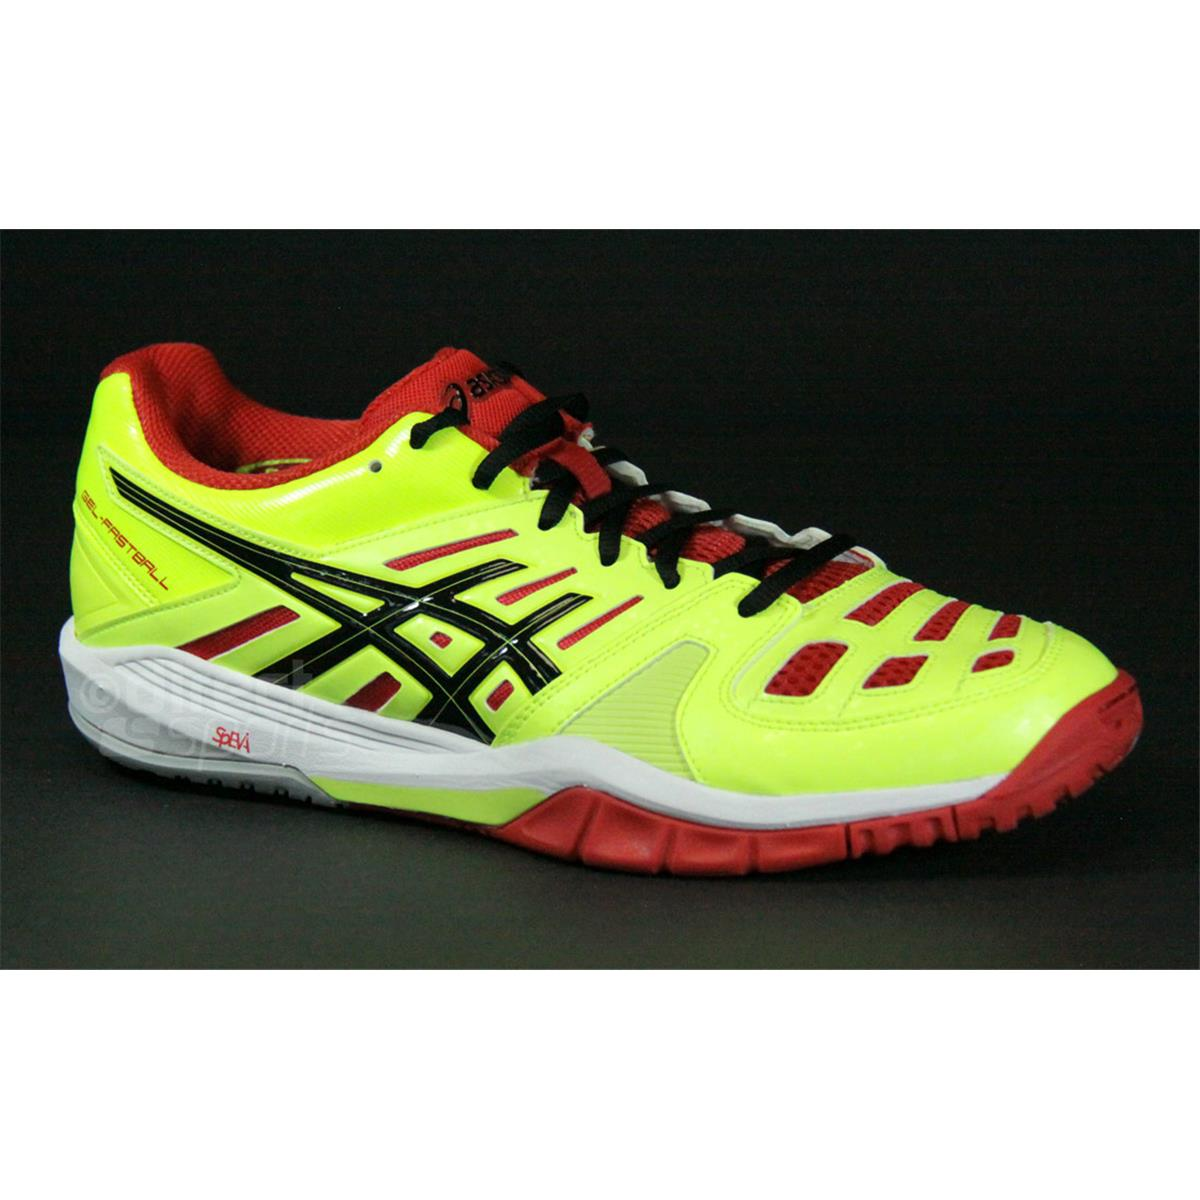 asics gel fastball mens court shoes flash yellow